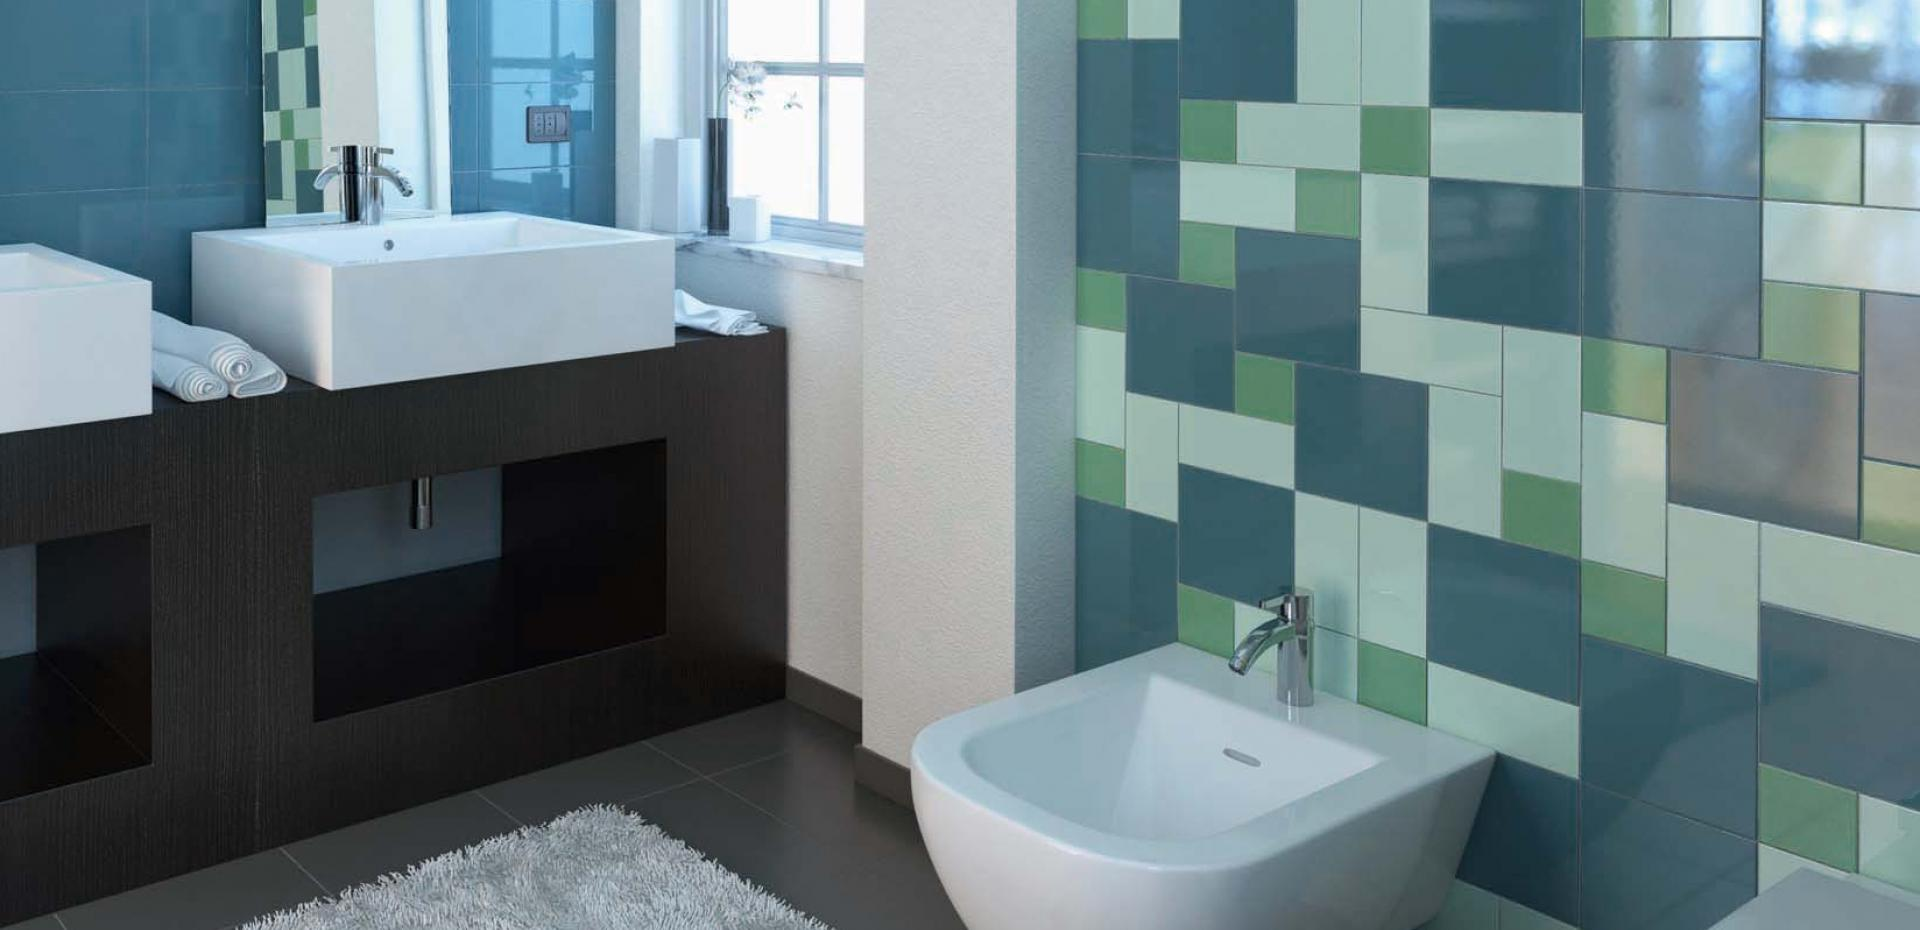 Piastrelle Bagno Colorate. Fabulous Trasparenze Collection With Piastrelle Bagno Blu Mare With ...